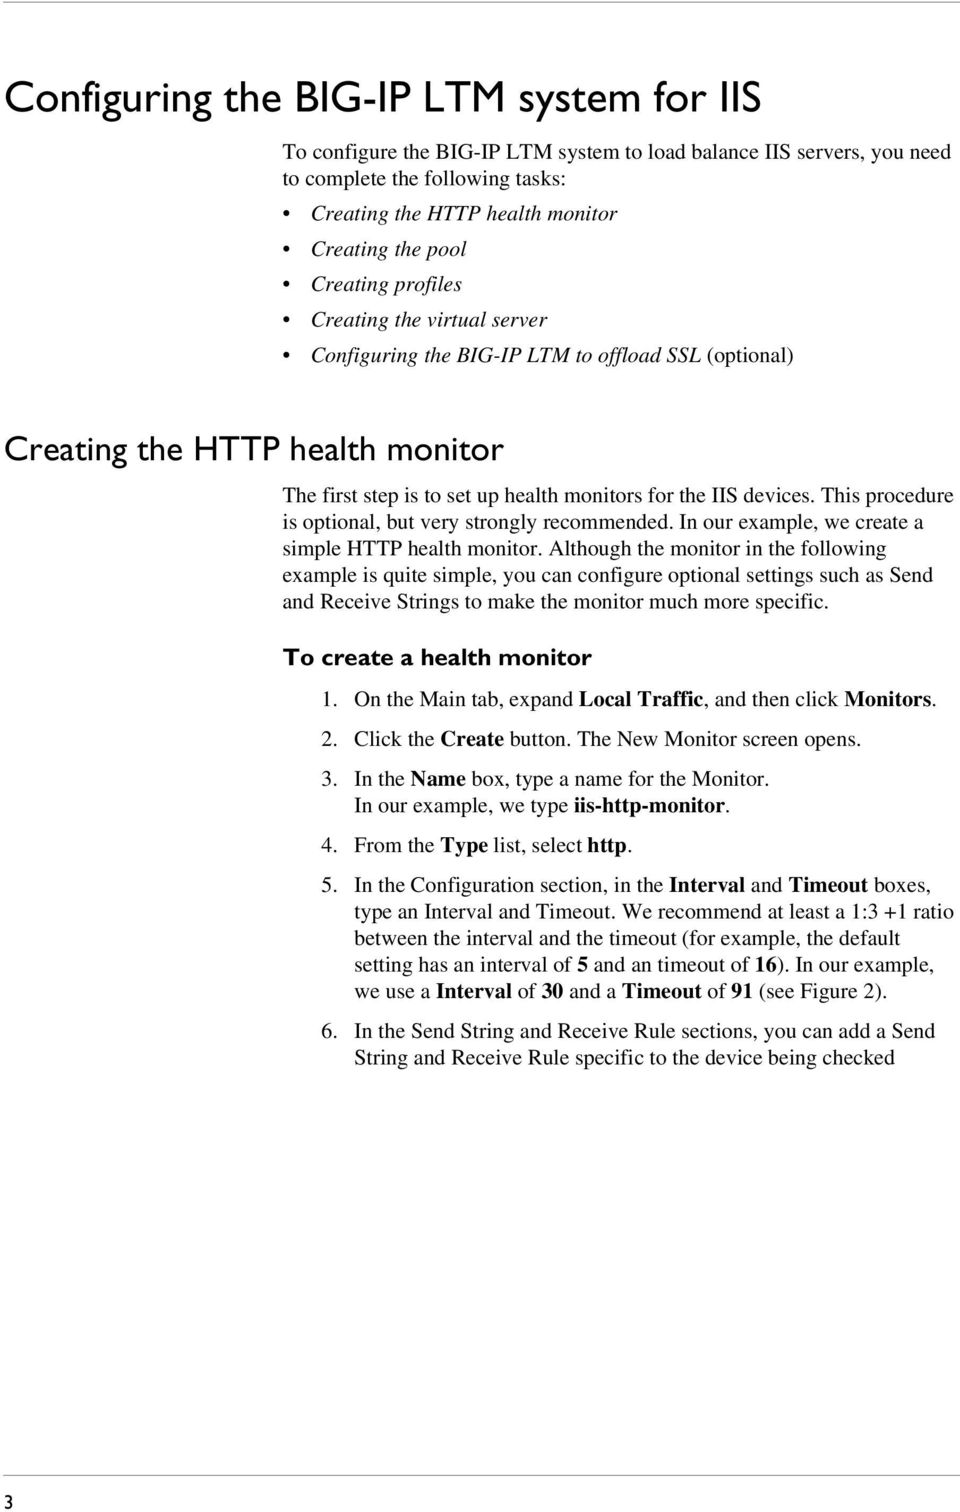 This procedure is optional, but very strongly recommended. In our example, we create a simple HTTP health monitor.